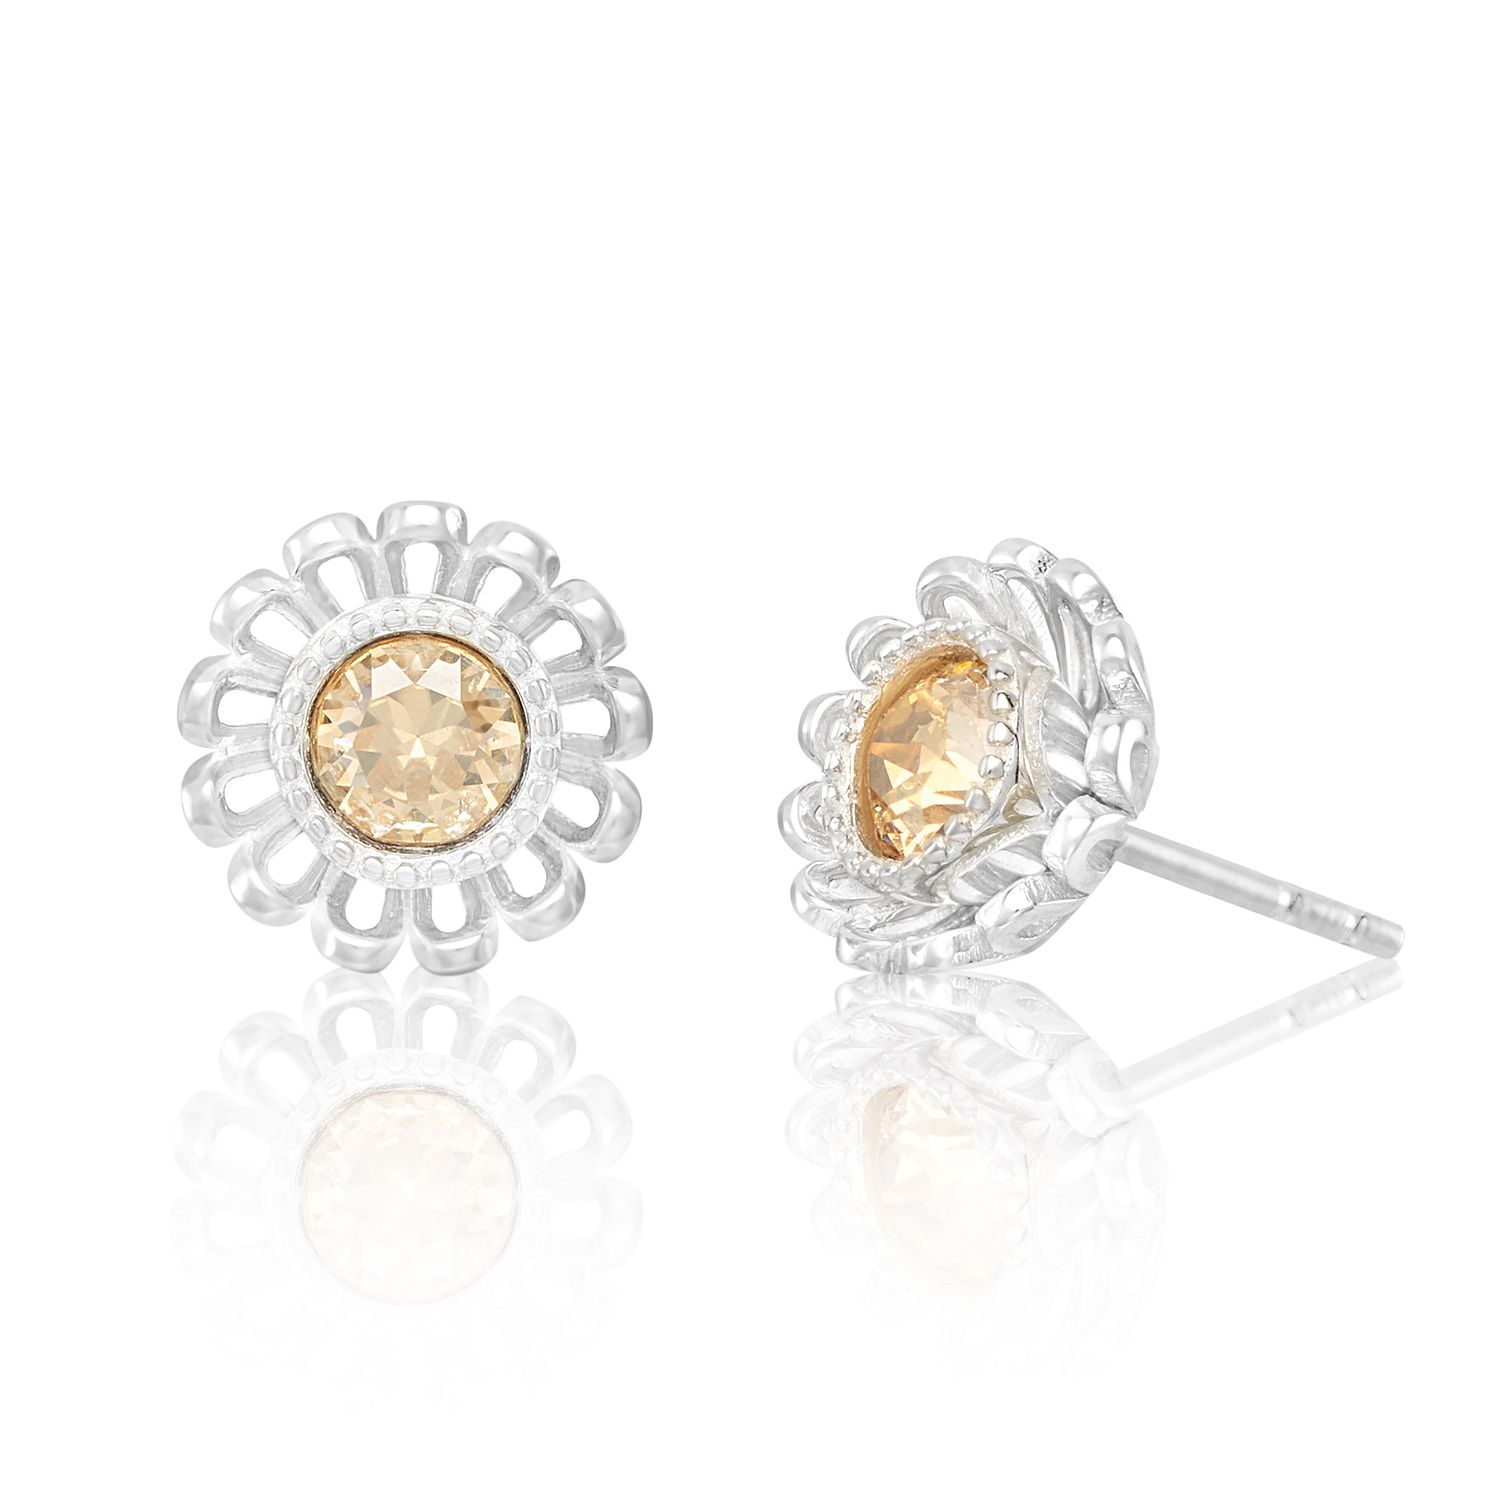 Chamilia Daisy Post Stud Earrings with Swarovski Crystal - Product number 2221195